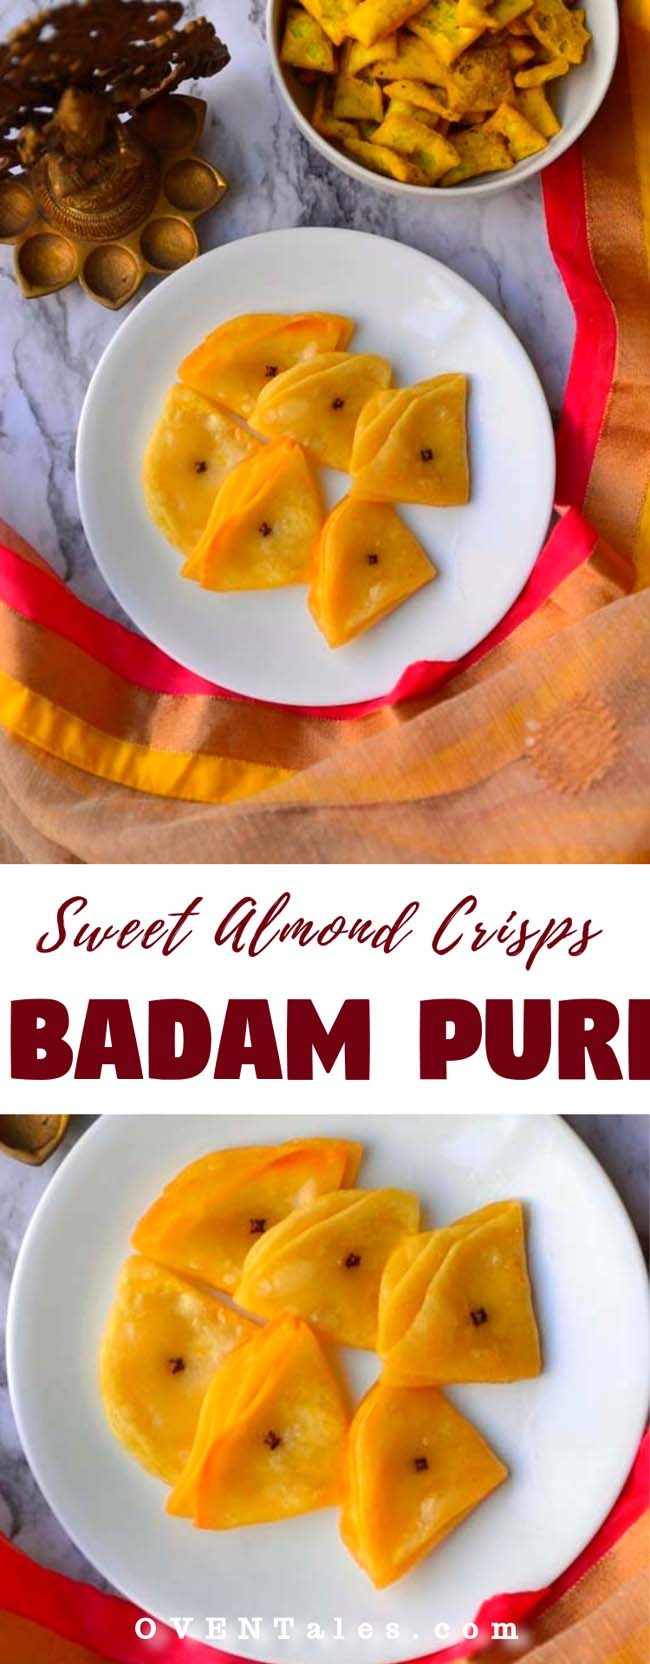 Badam Puri or Badami Puri or Almond Poori